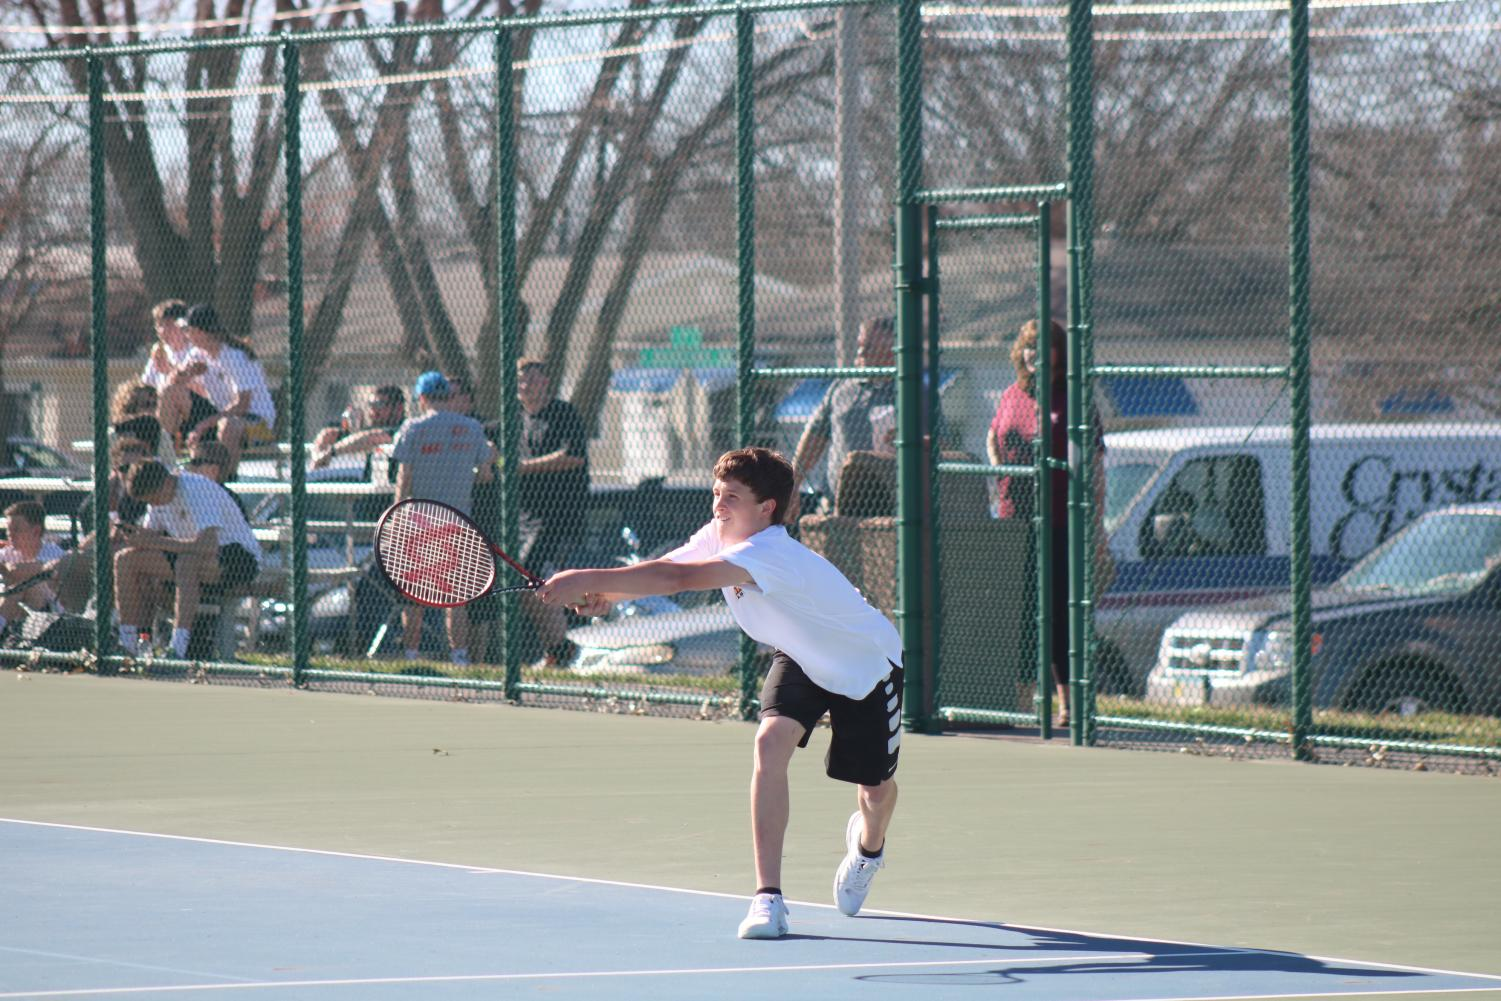 Sophomore Grant Sturm eyes his backhand shot earlier this season. Sturm started the season as a new player, and he has moved his way up to the #5 varsity spot.